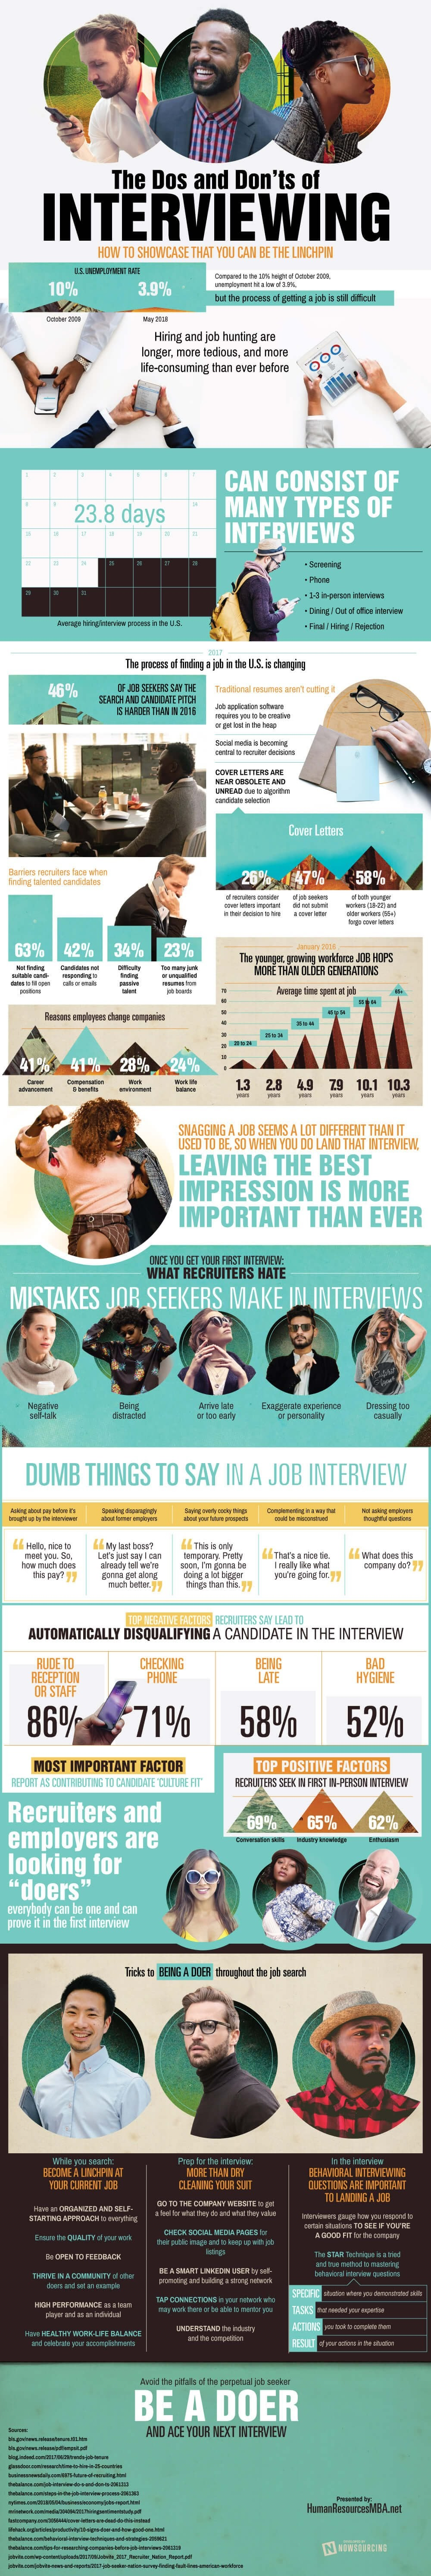 The Dos and Don'ts of Interviewing - #infographic